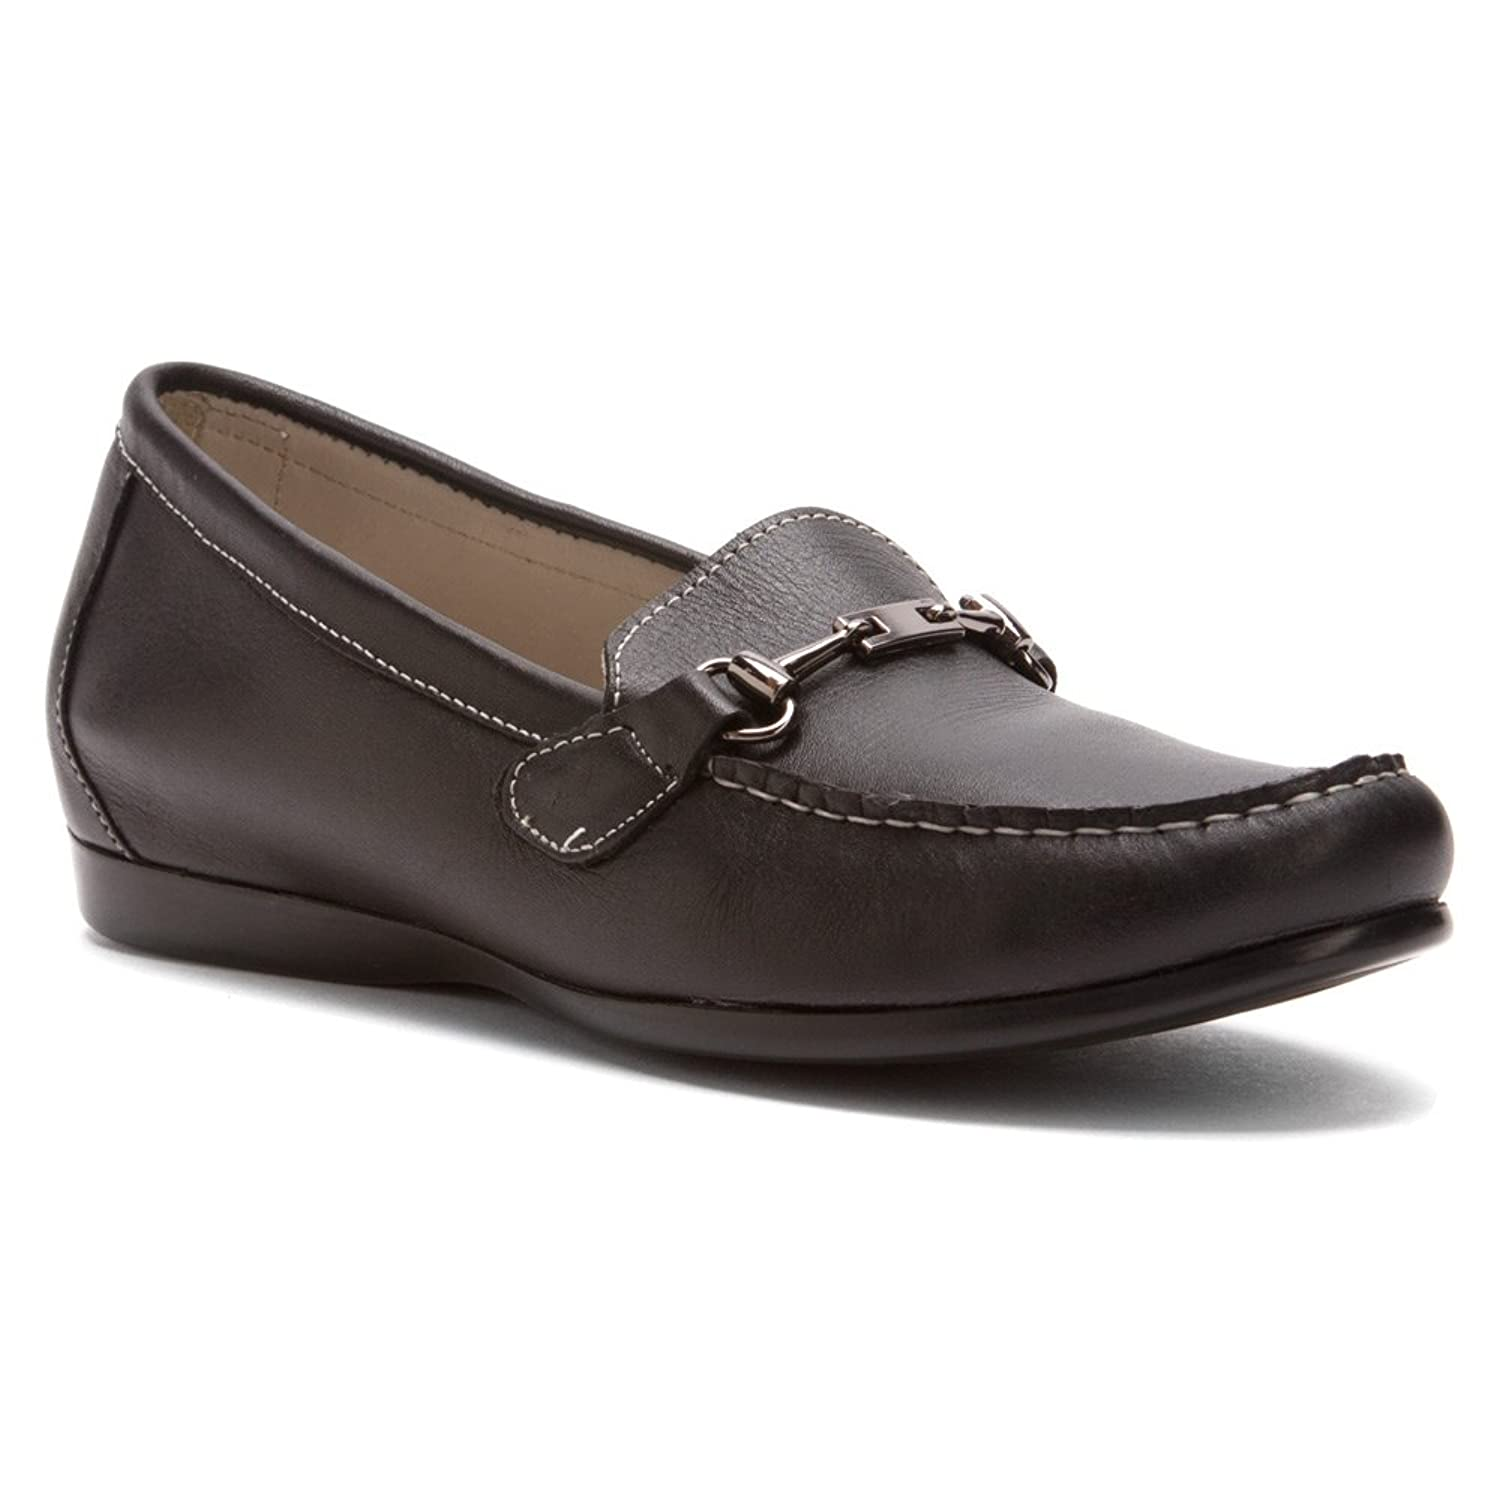 Munro American Women's Kimi Black Leather Loafer 7 SS (AAAA)